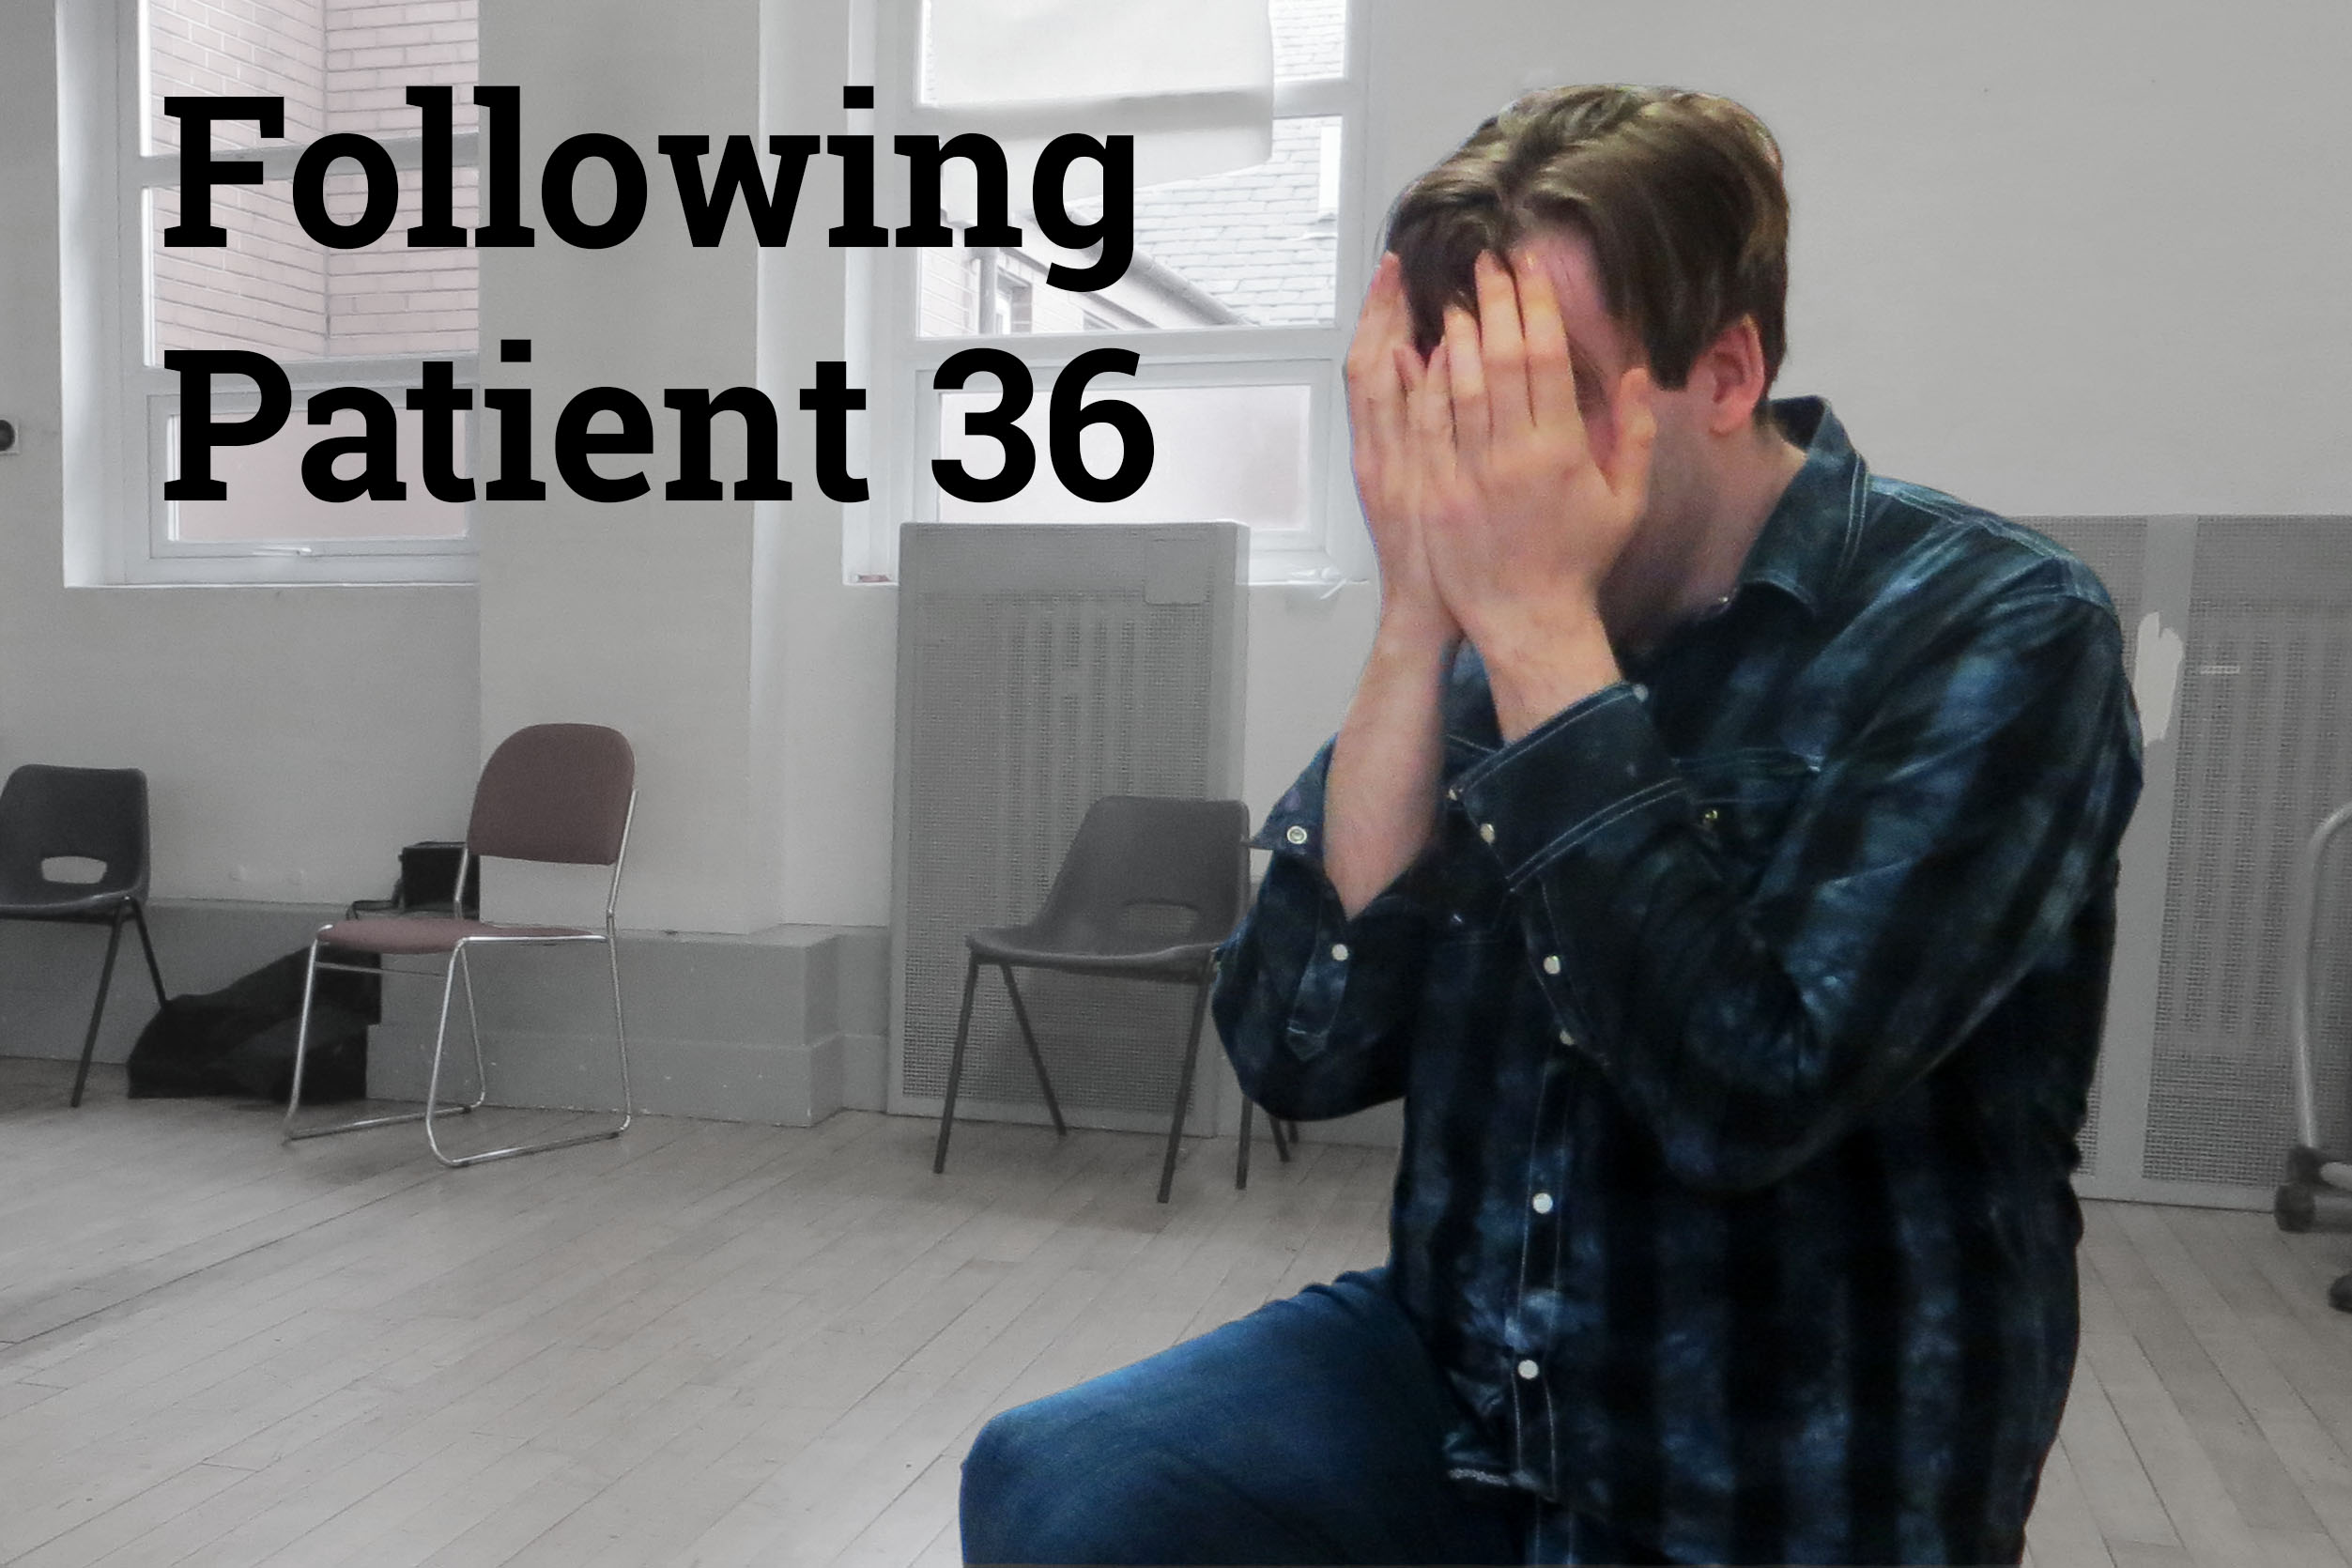 Photo: DIY starts work on our new show – Following Patient 36